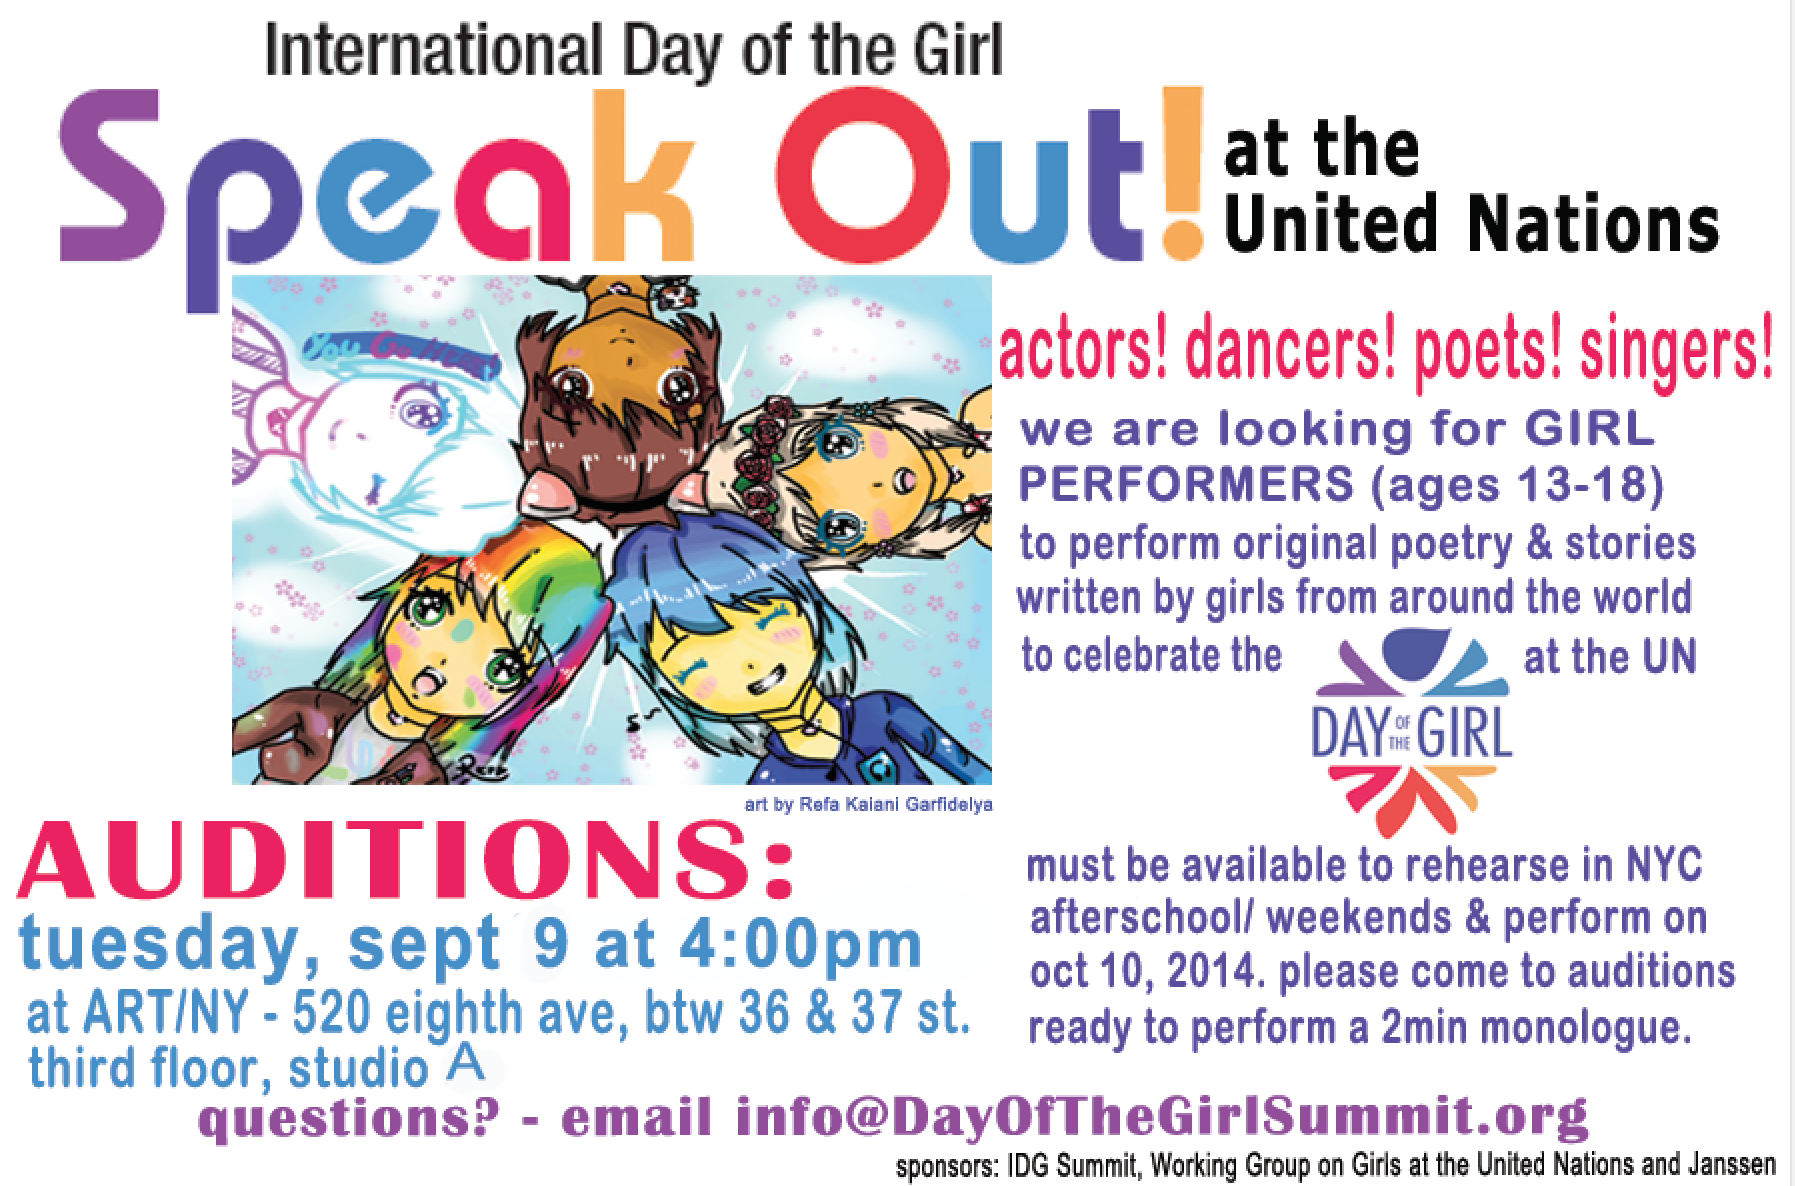 2nd Round of Auditions for Girls Speak Out!